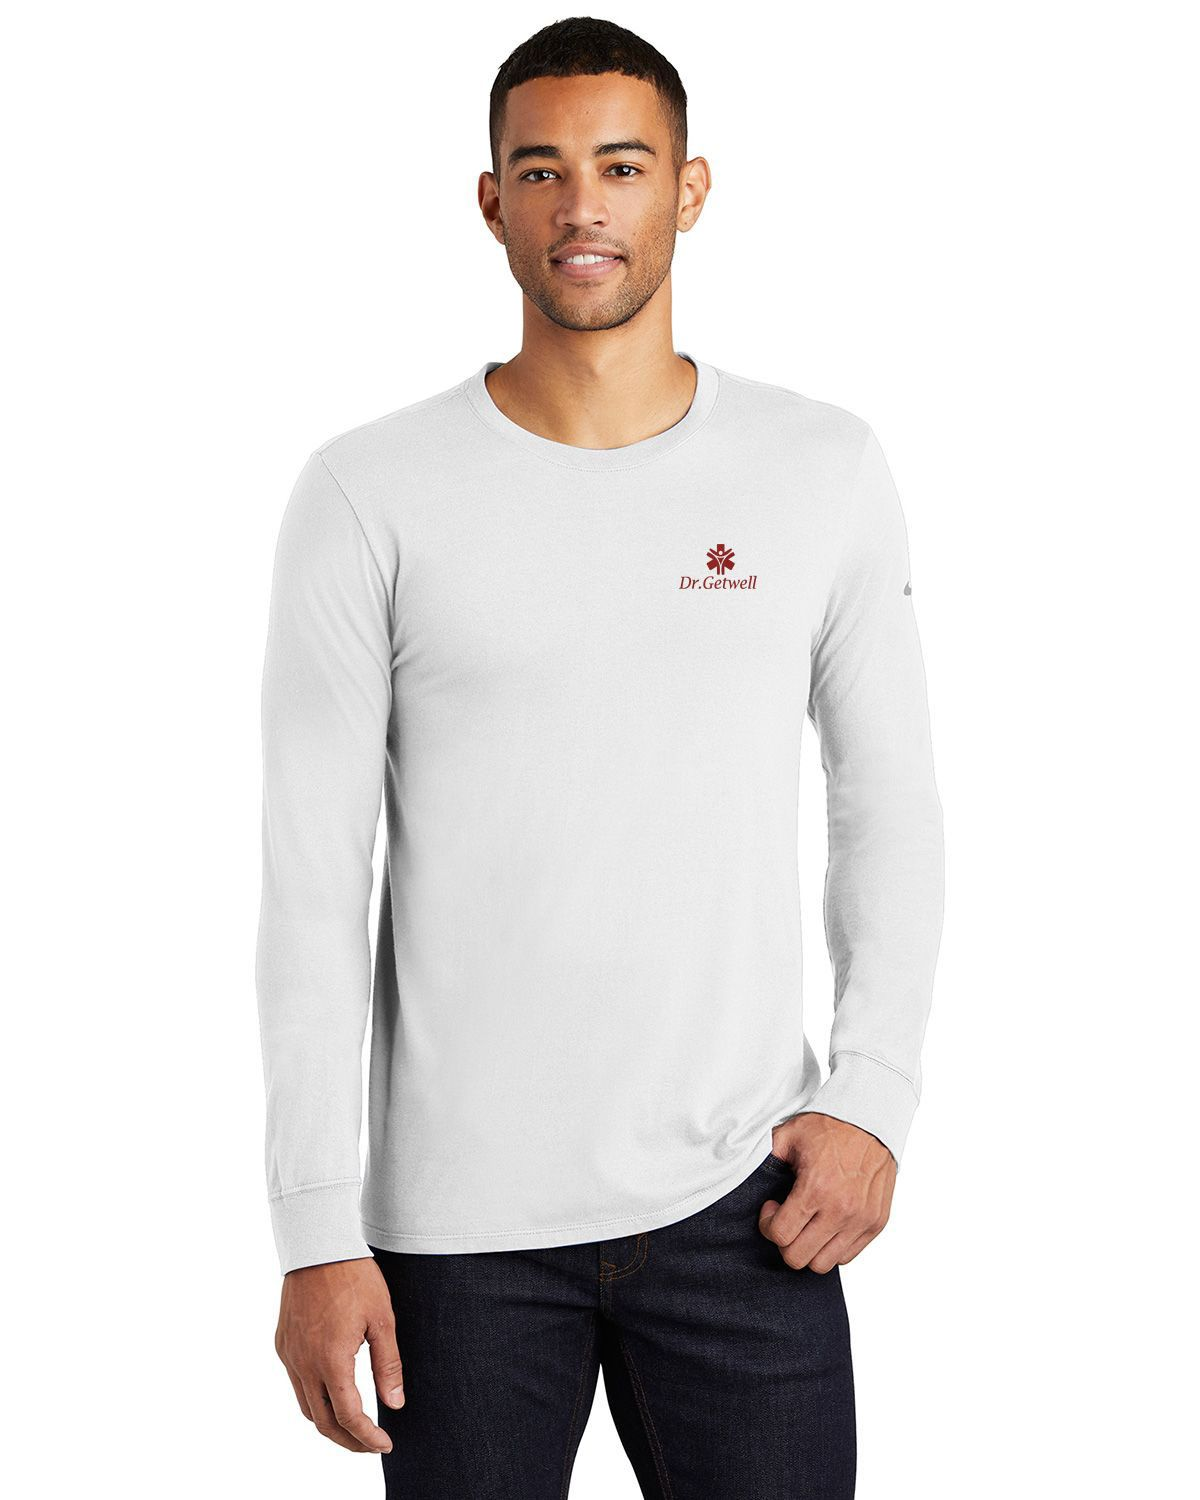 buy popular 4ea92 7064c Nike Golf NKBQ5232 Core Cotton Long Sleeve Tee - Free Shipping Available